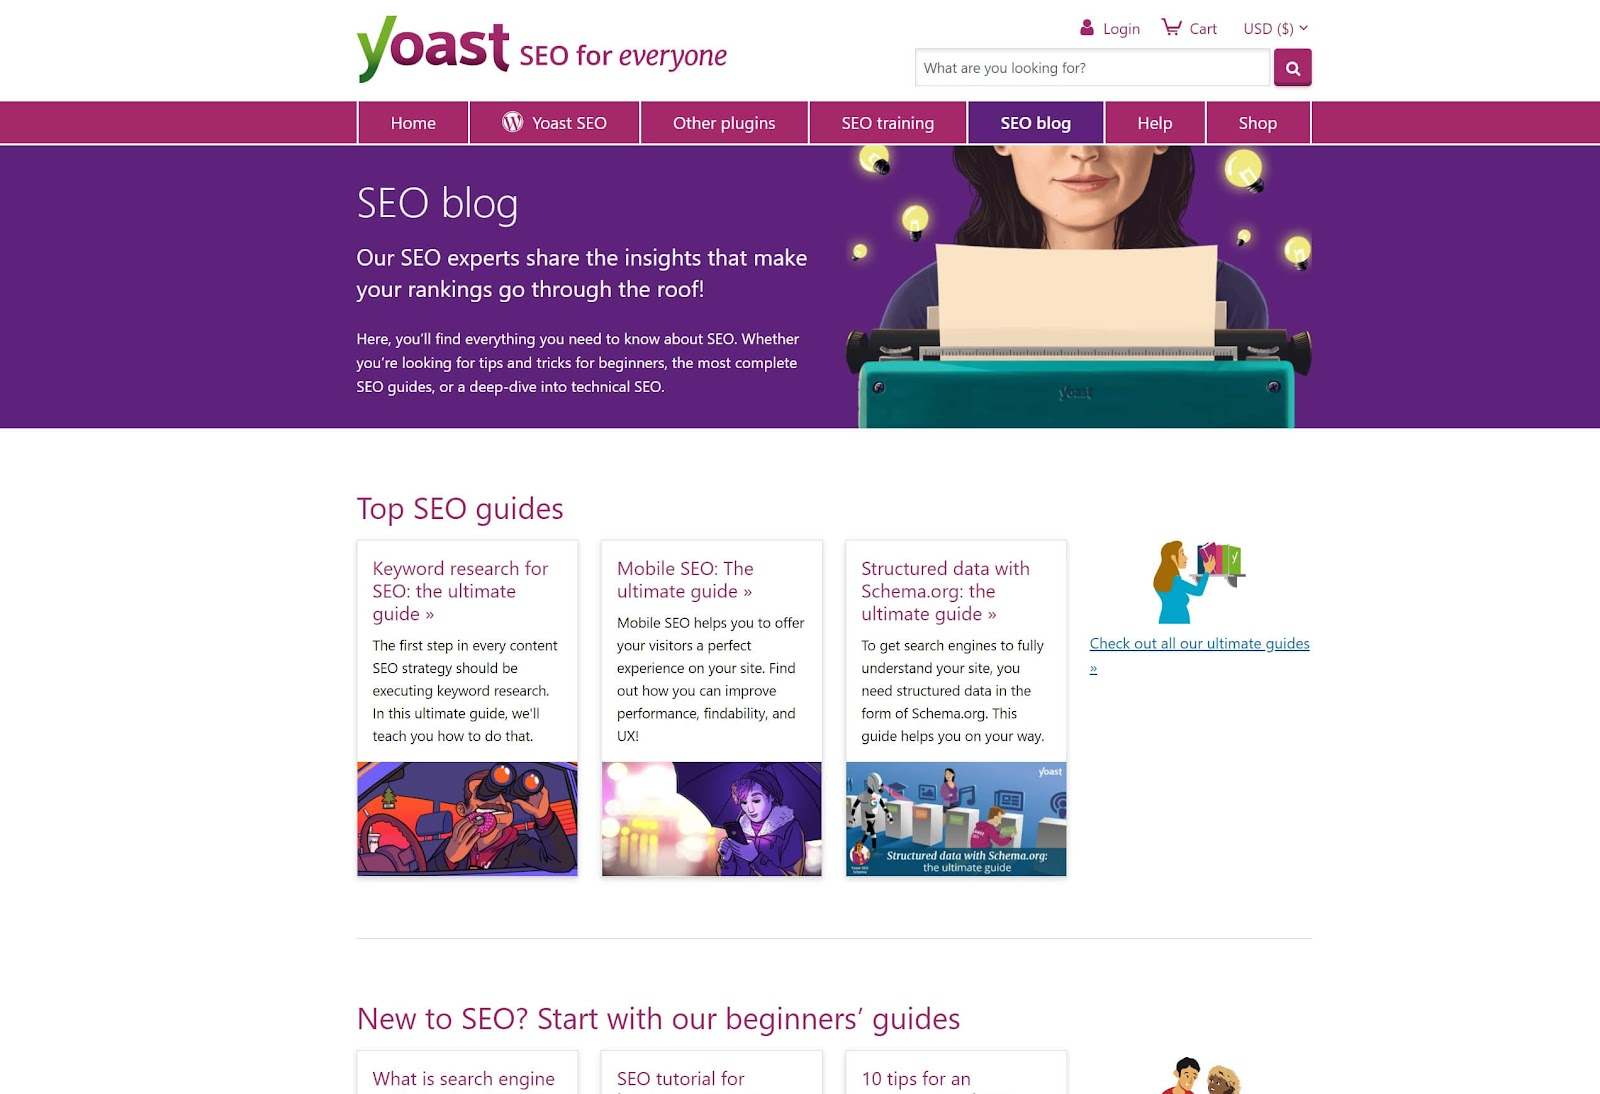 Image of Yoast SEO blog home page